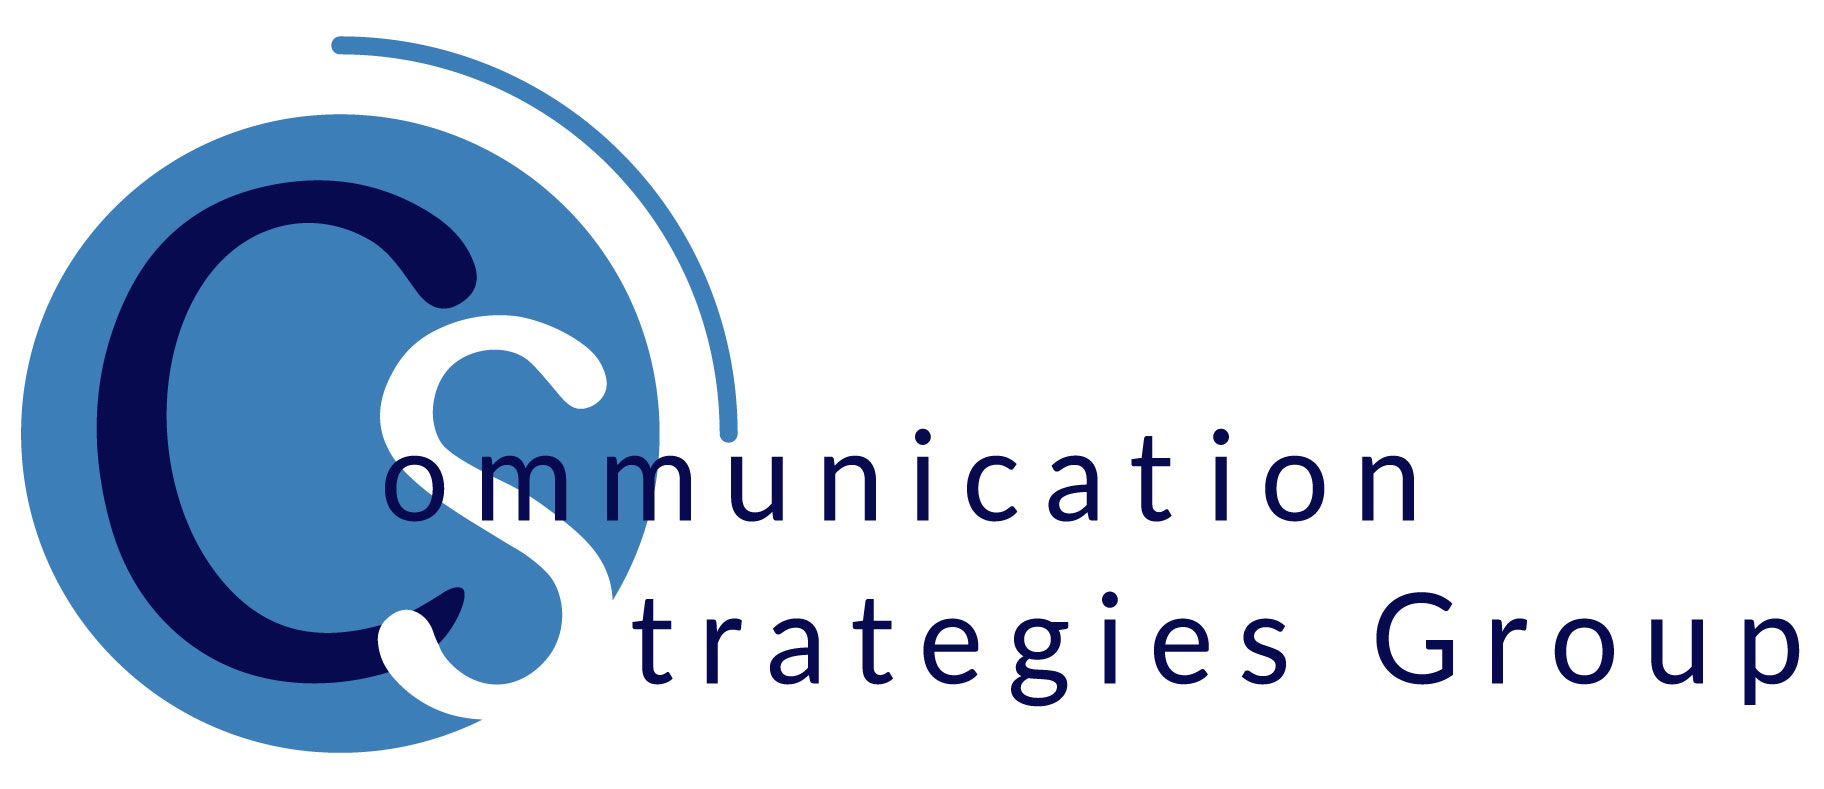 Communication Strategies Group